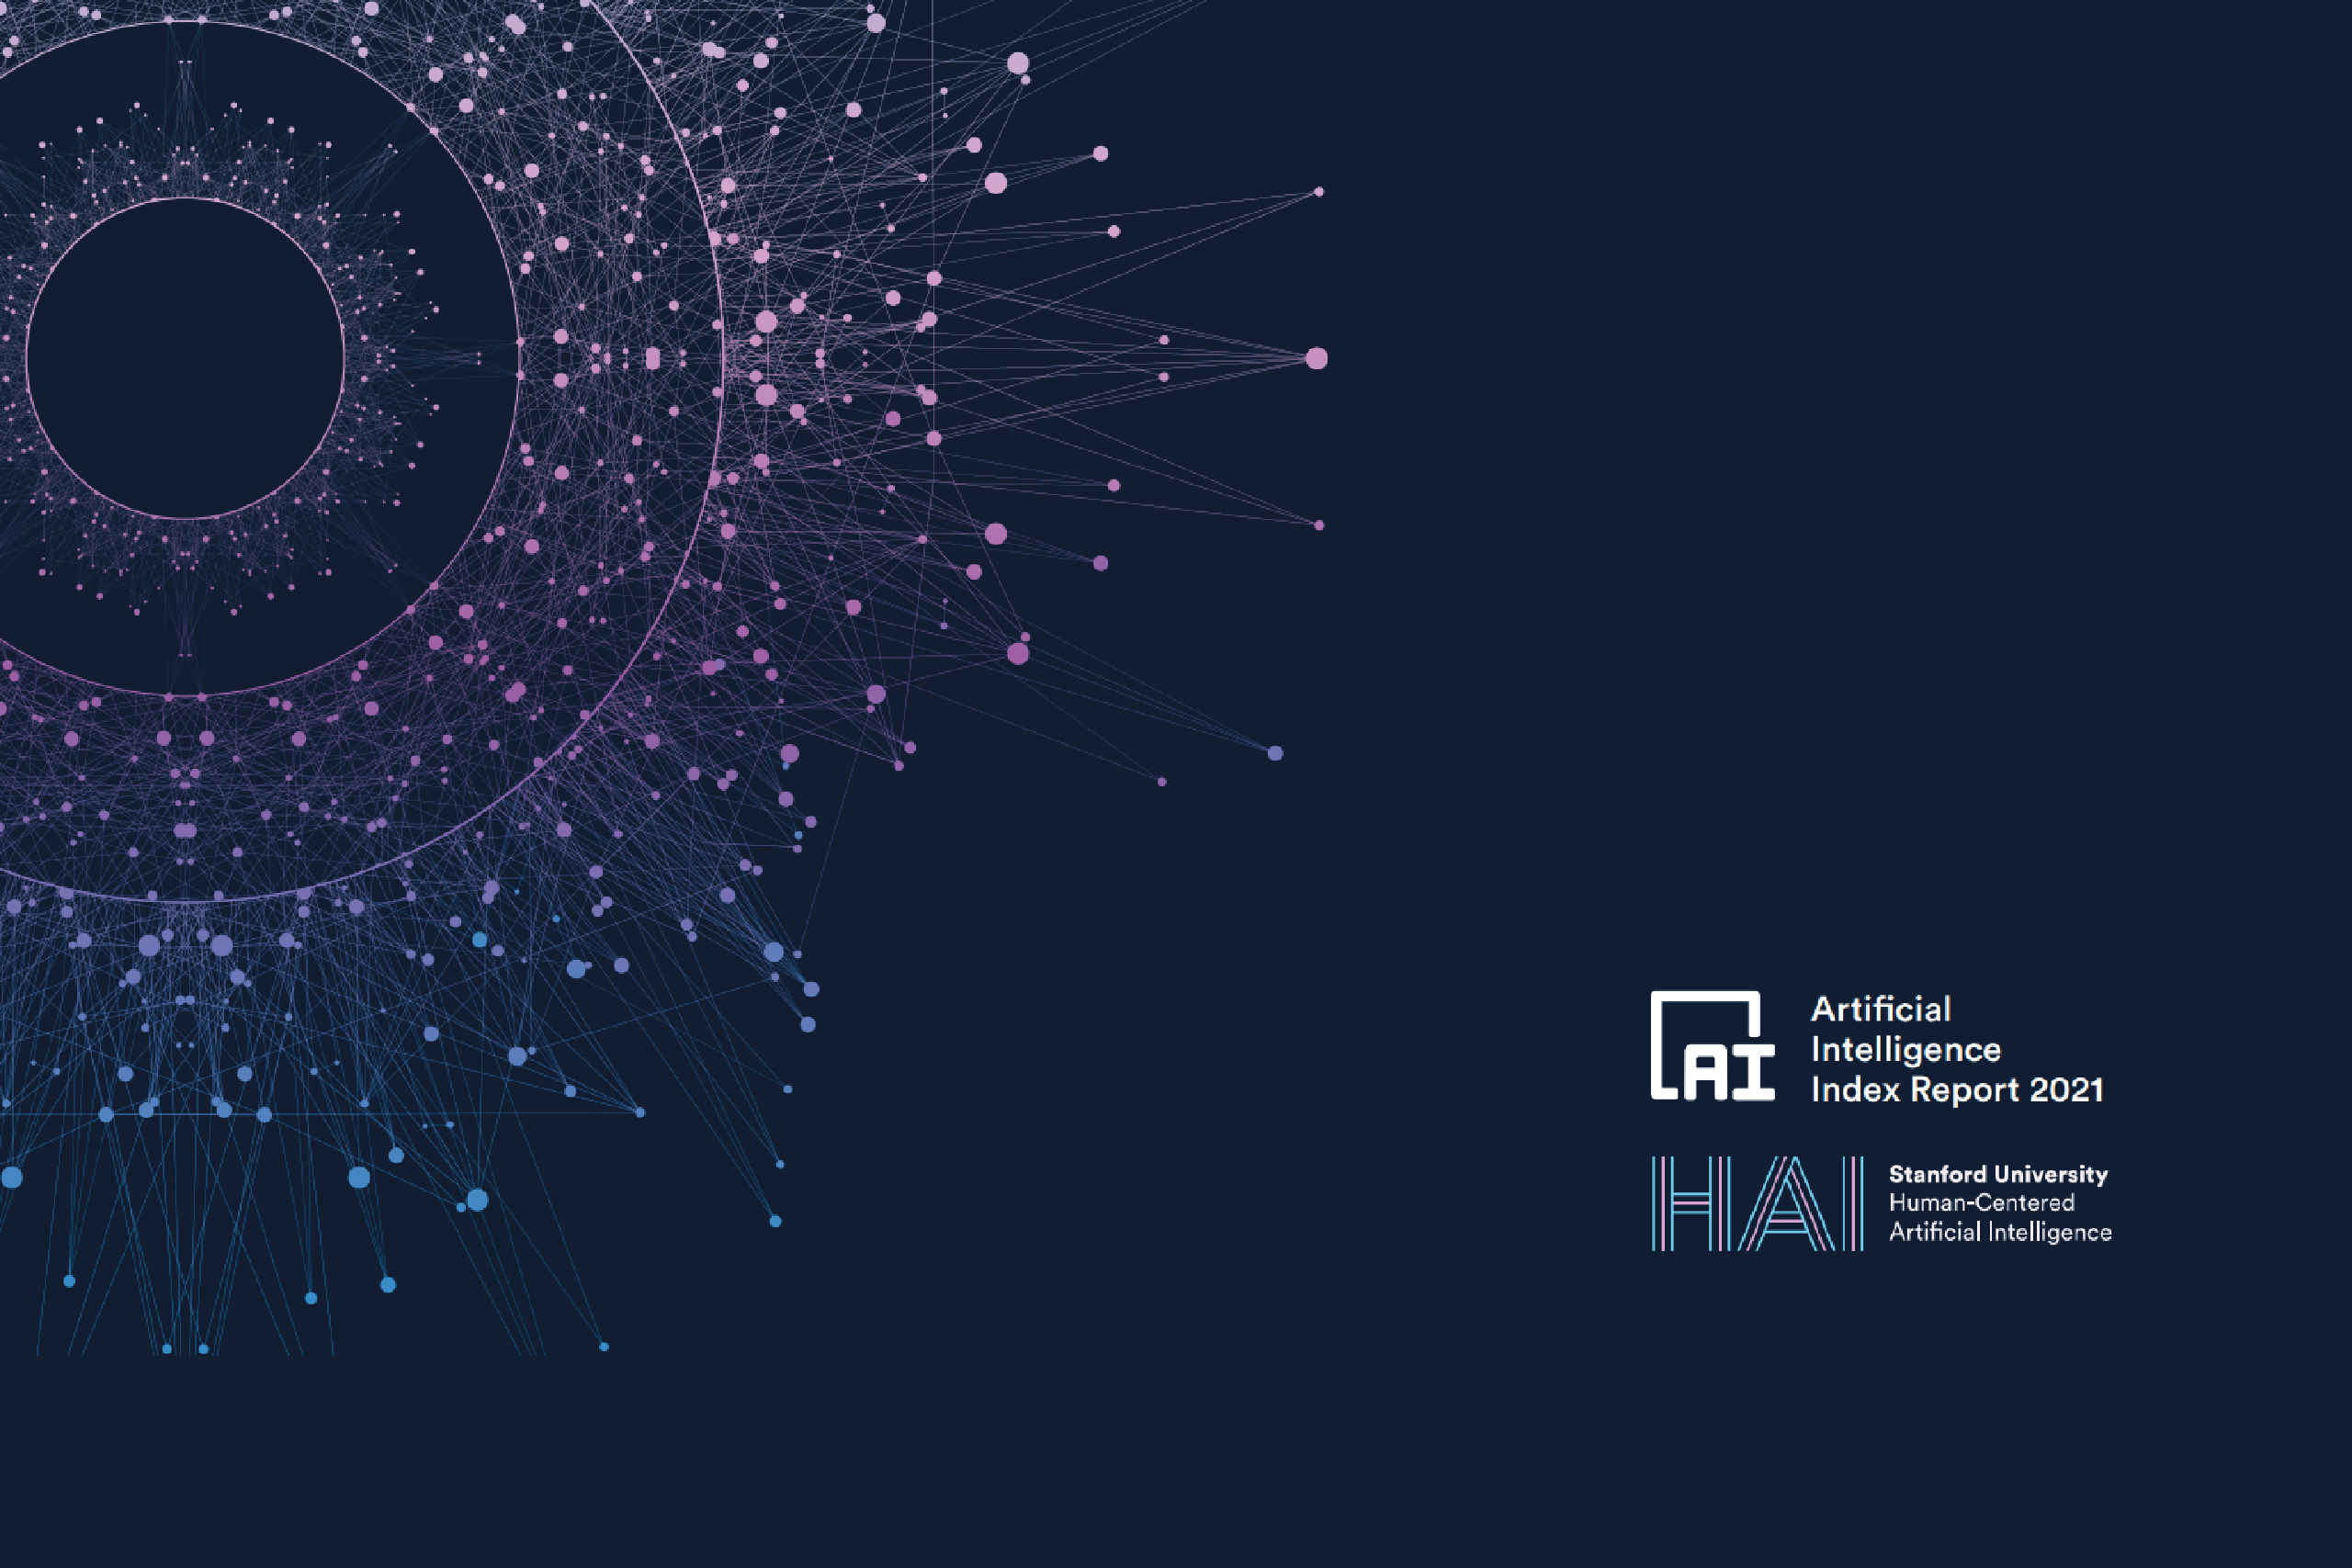 Artificial Intelligence Report by HAI